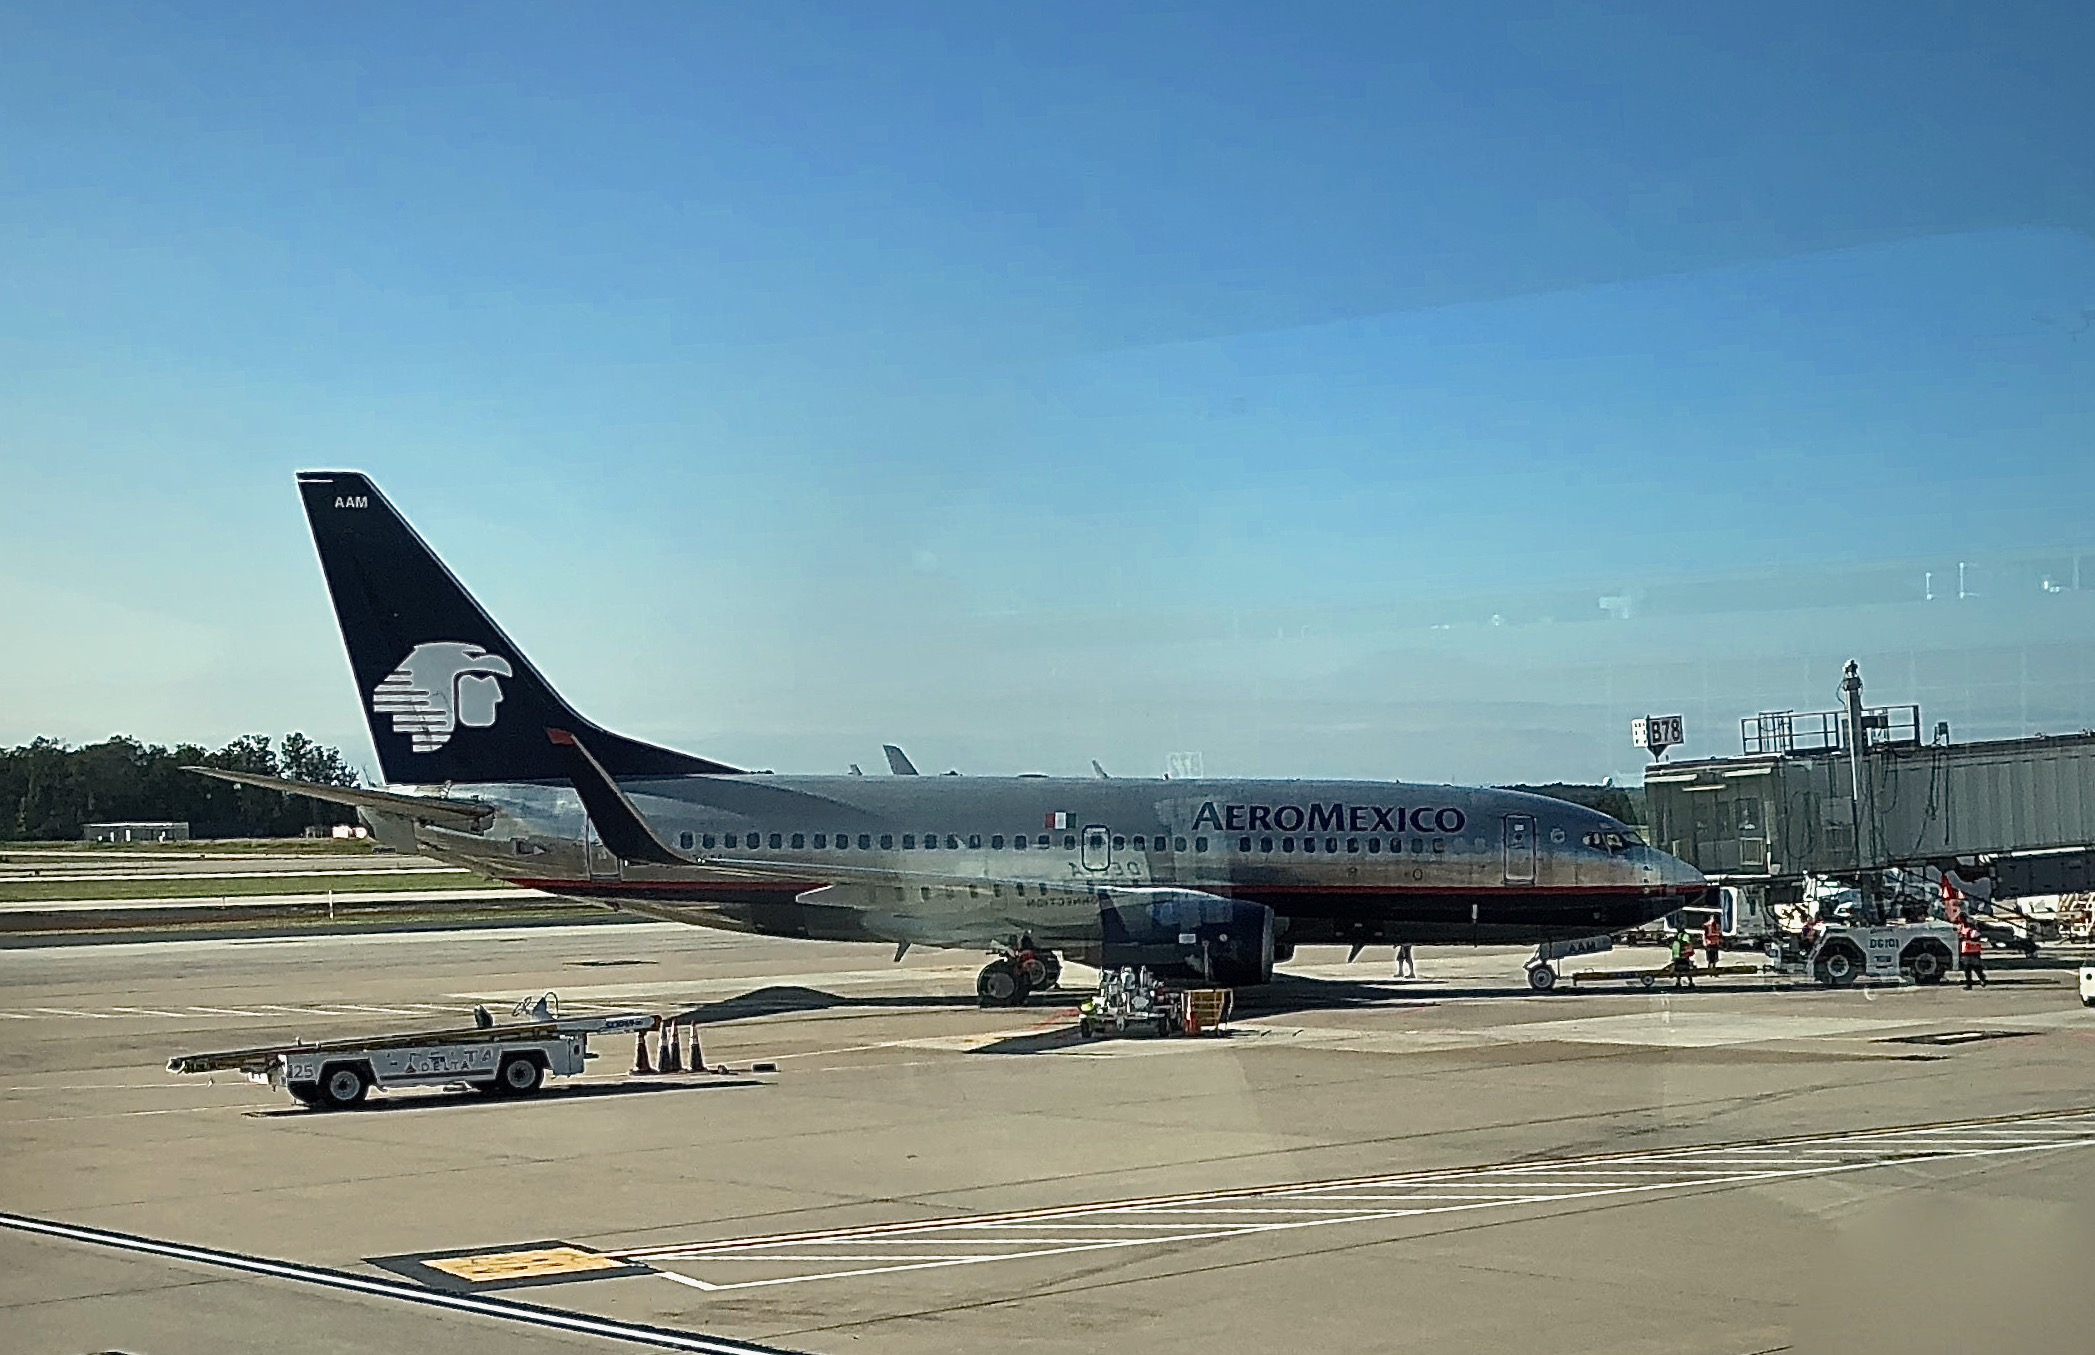 An Aeromexico Boeing 737-700 at Washington Dulles Airport